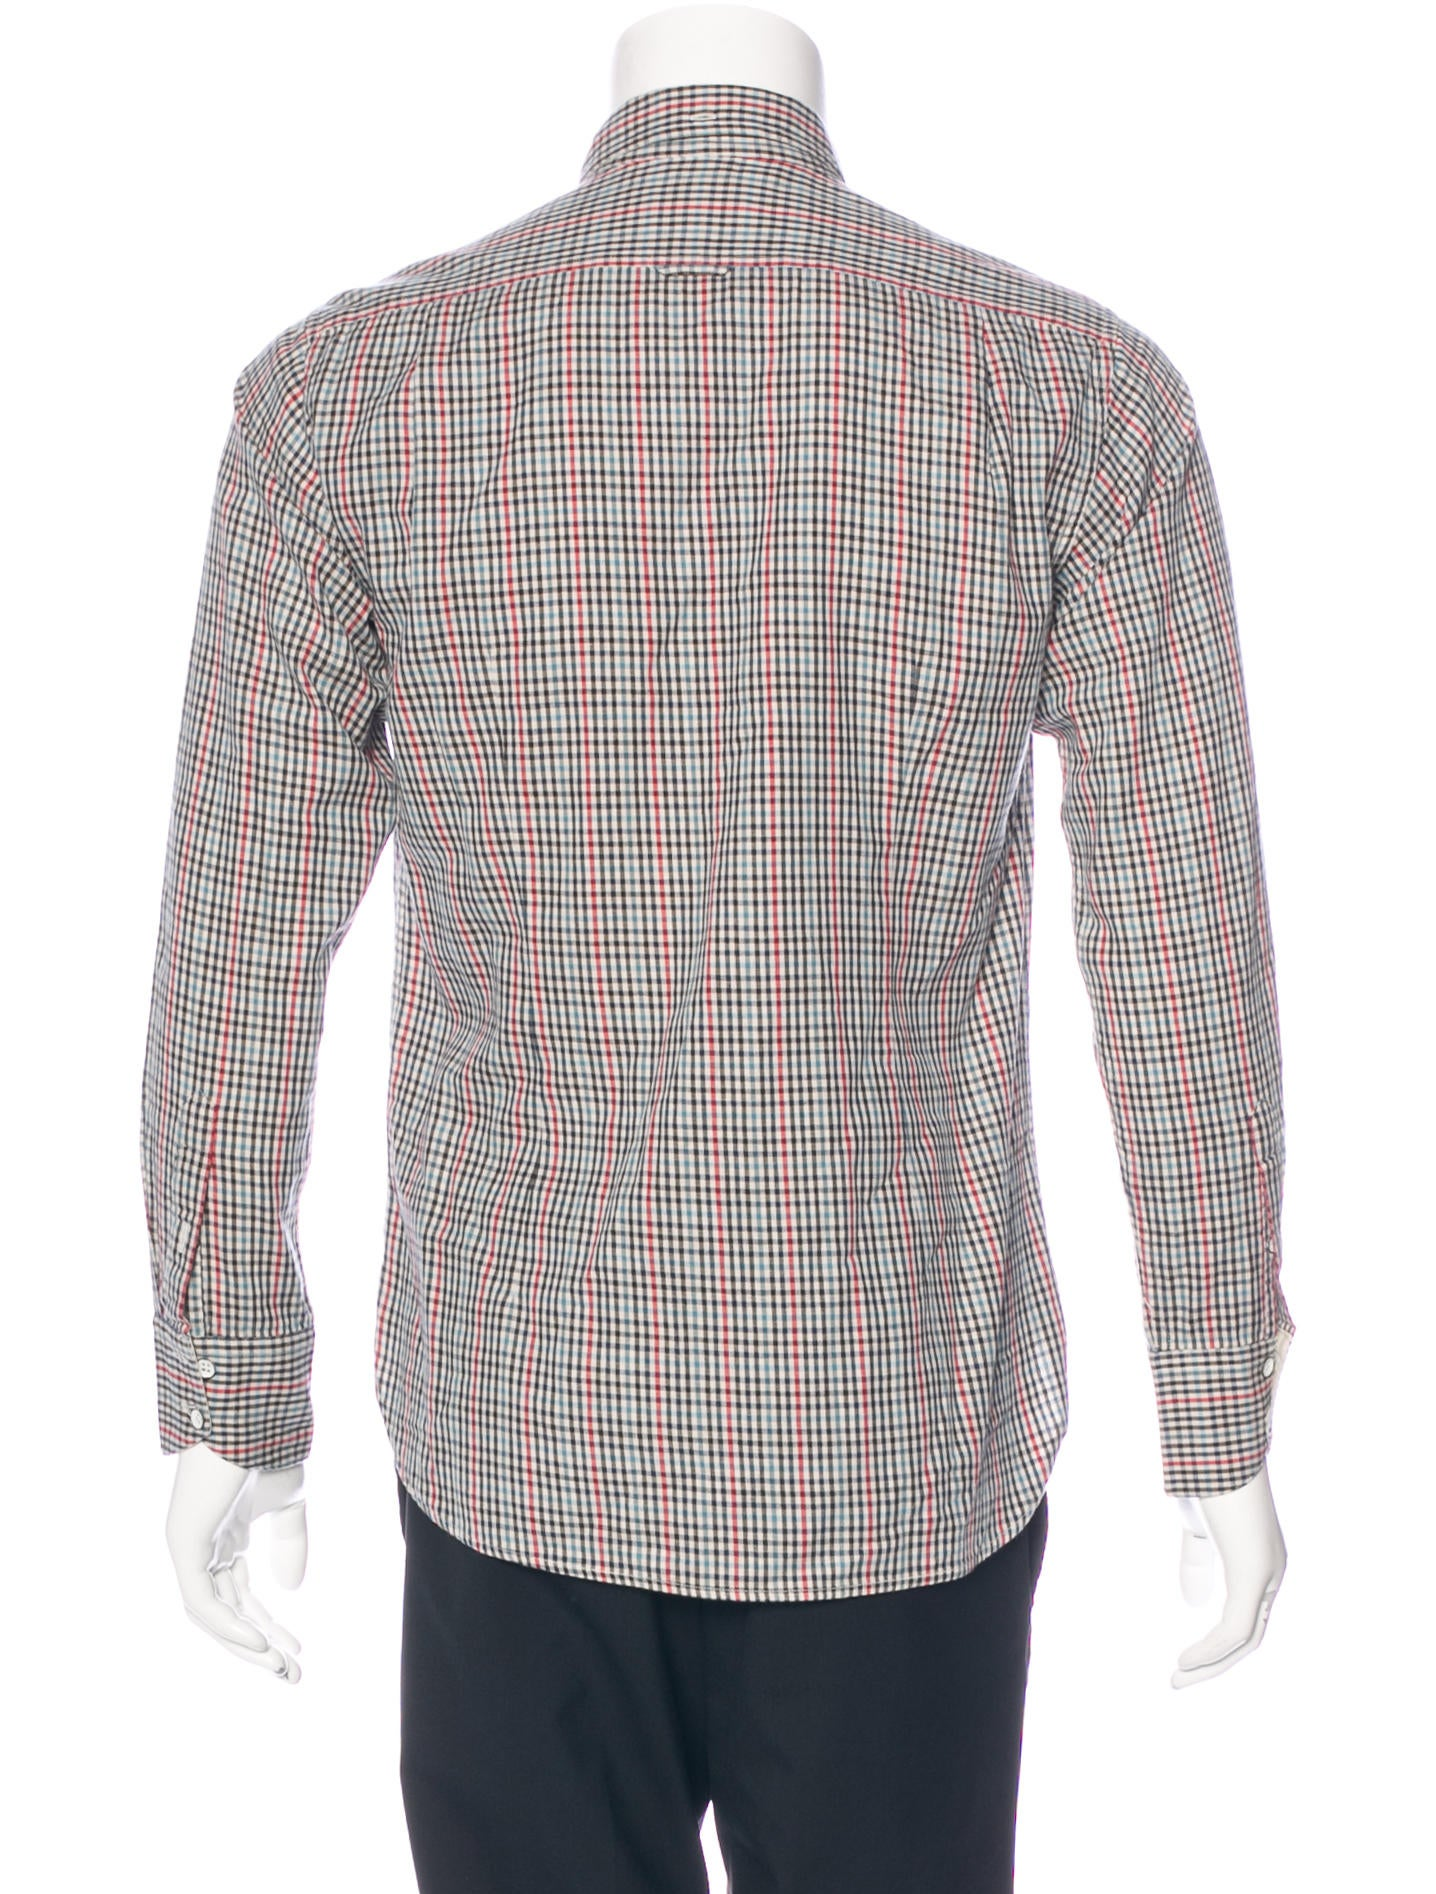 Rag Bone Gingham Button Up Shirt Clothing Wragb68060